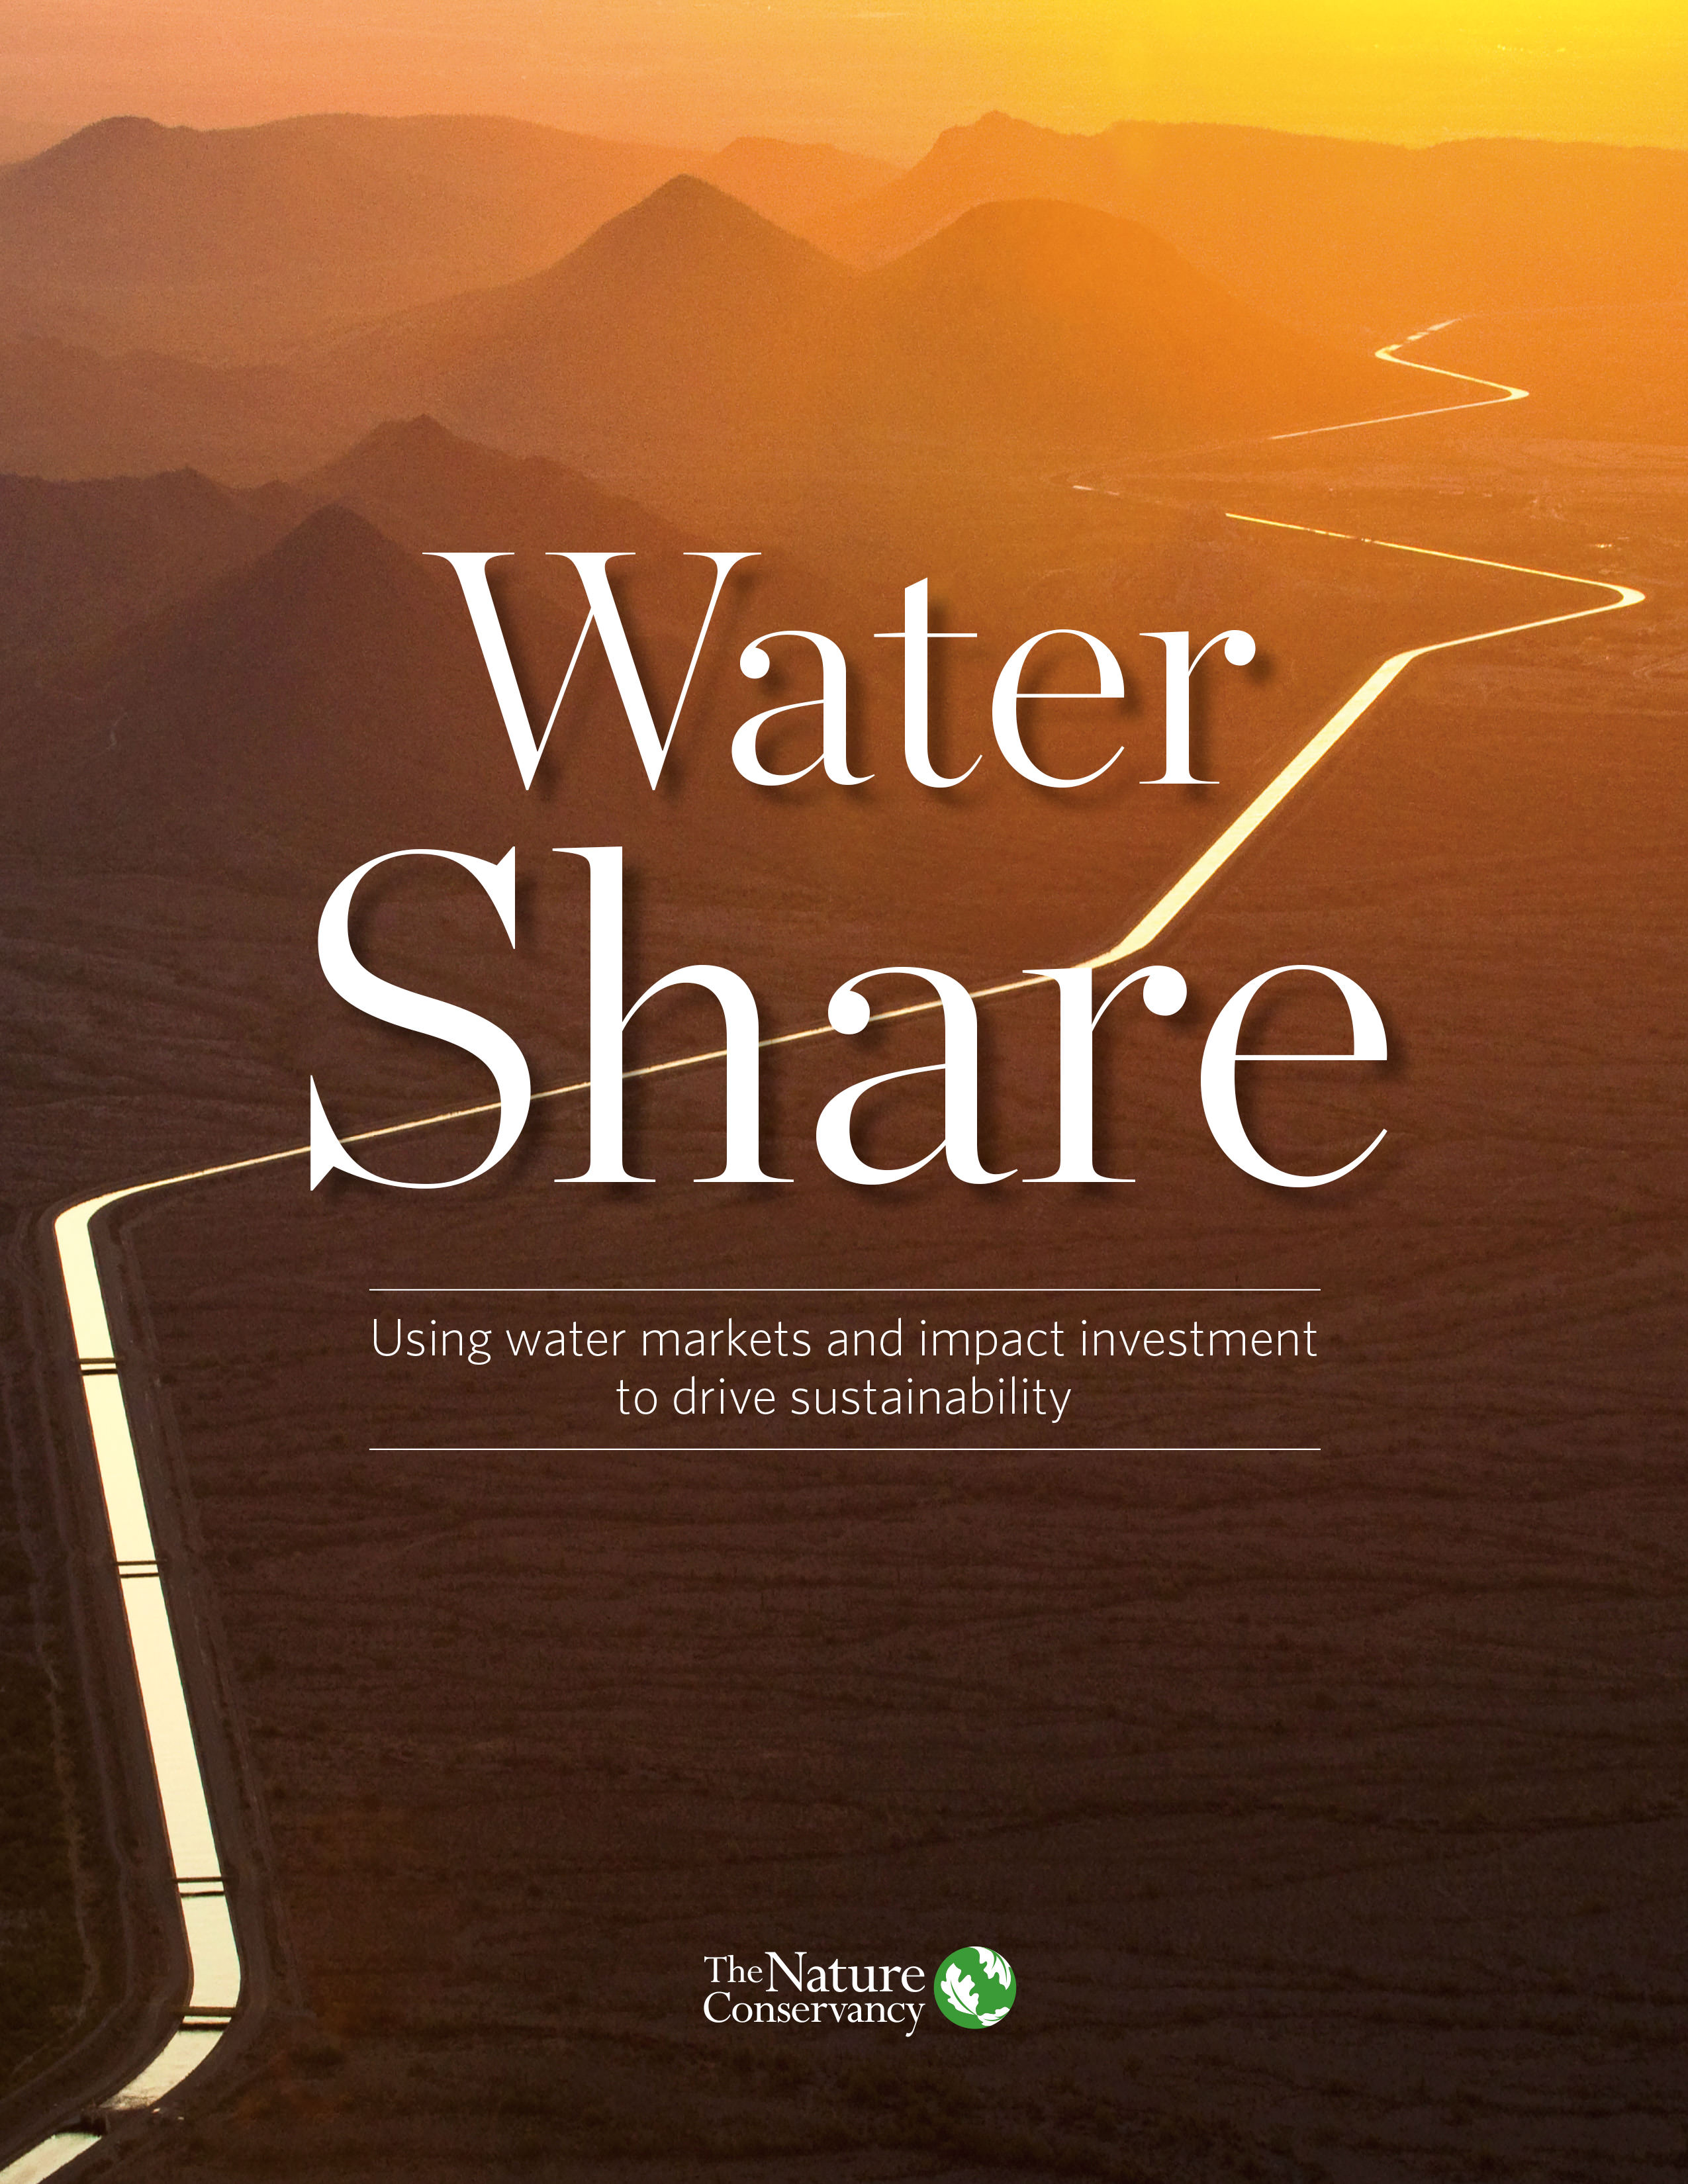 Using water markets and impact investment to drive sustainability.